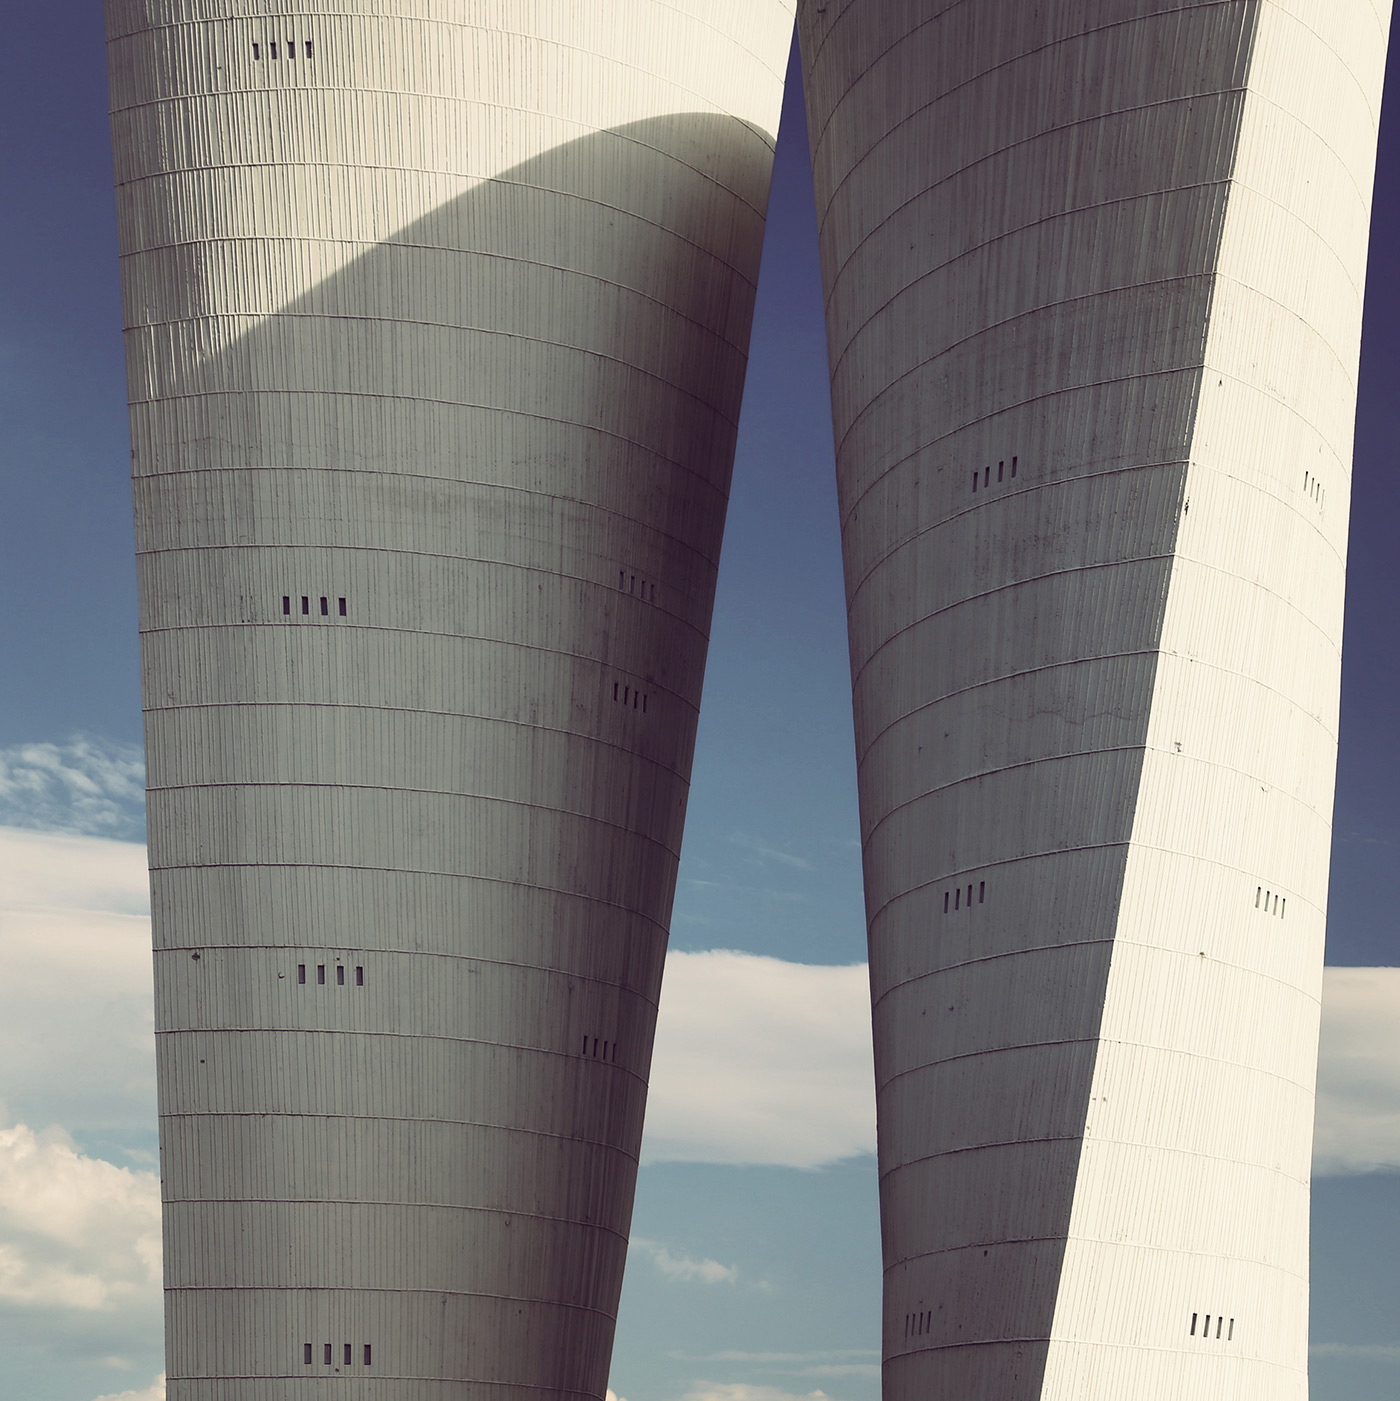 Water towers <br />Location: Valence, France <br />Sculptor: Philolaos Tloupas